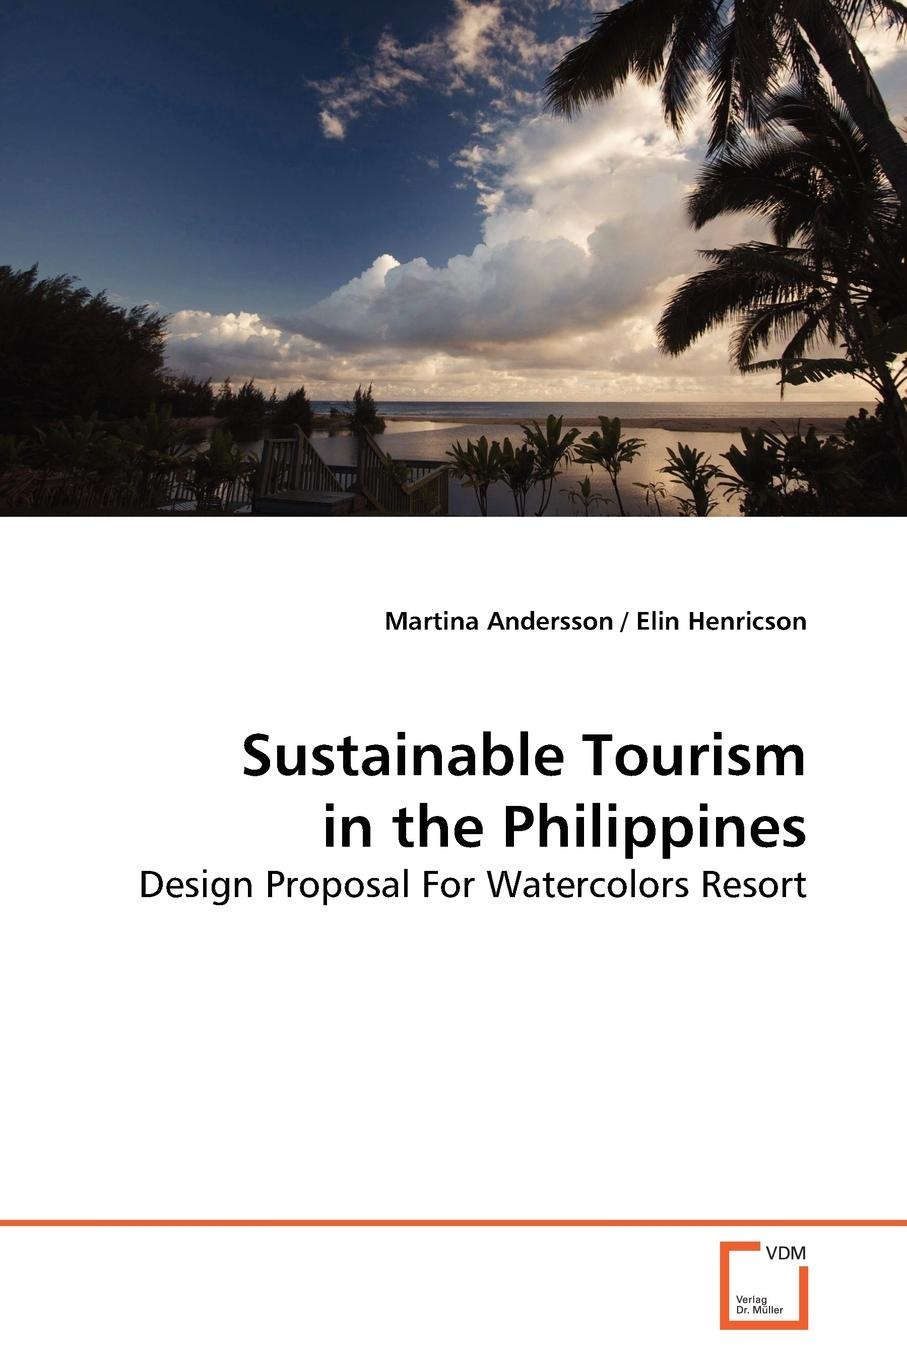 Martina Andersson Sustainable Tourism in the Philippines